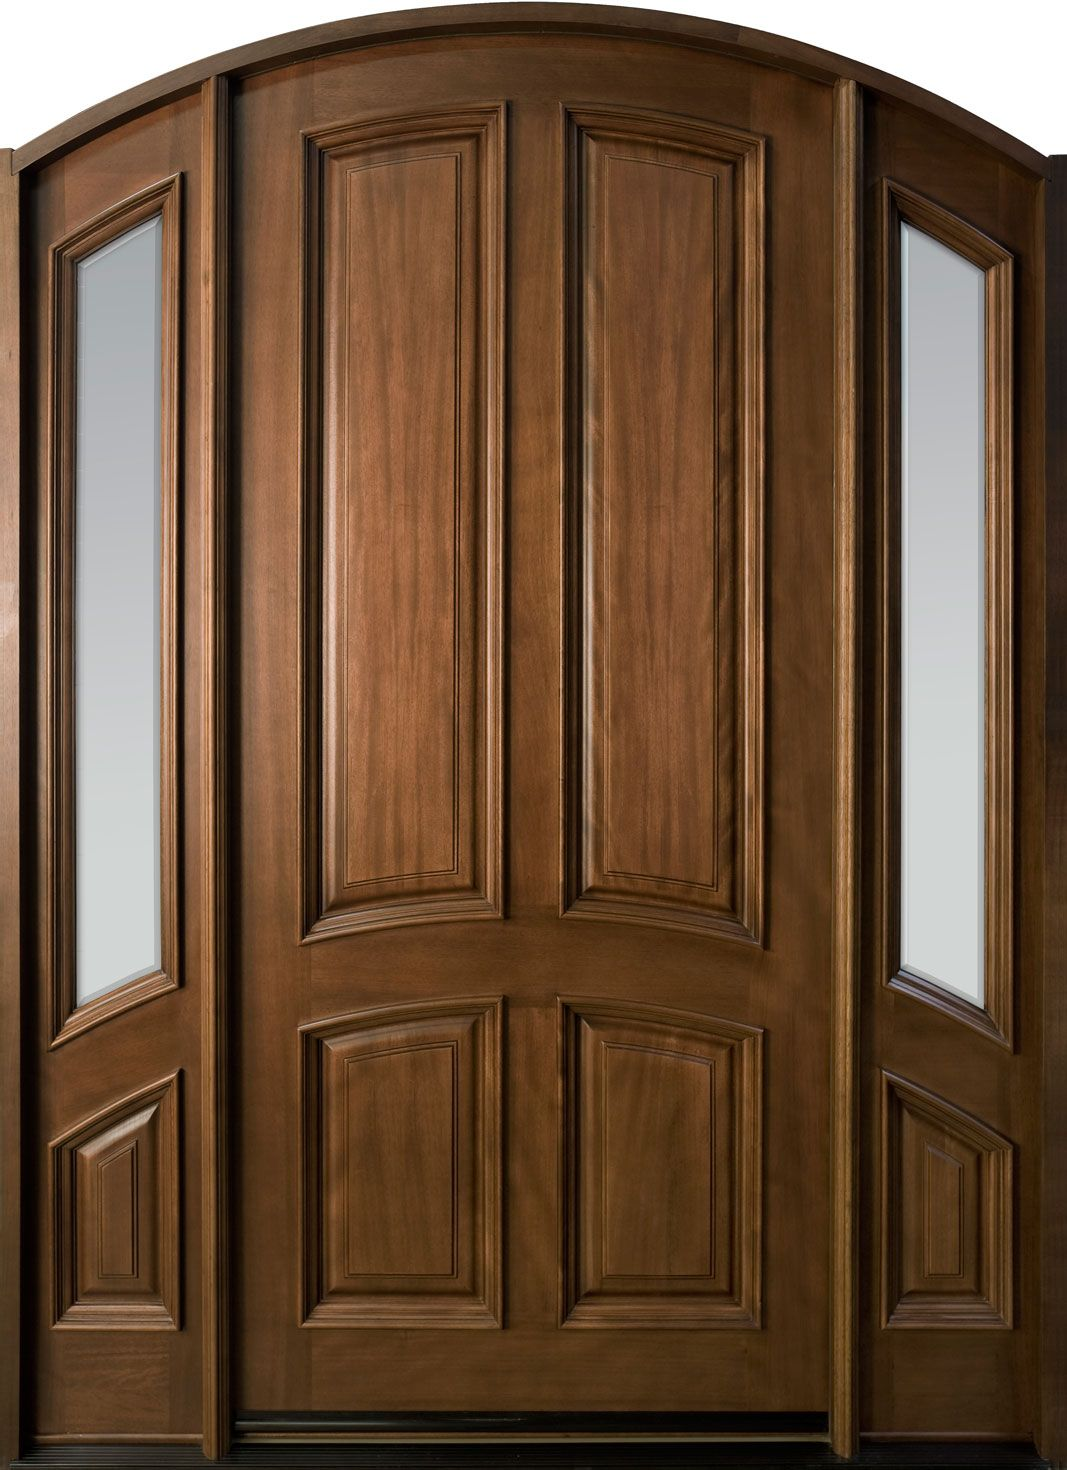 Solid wood entry and interior doors